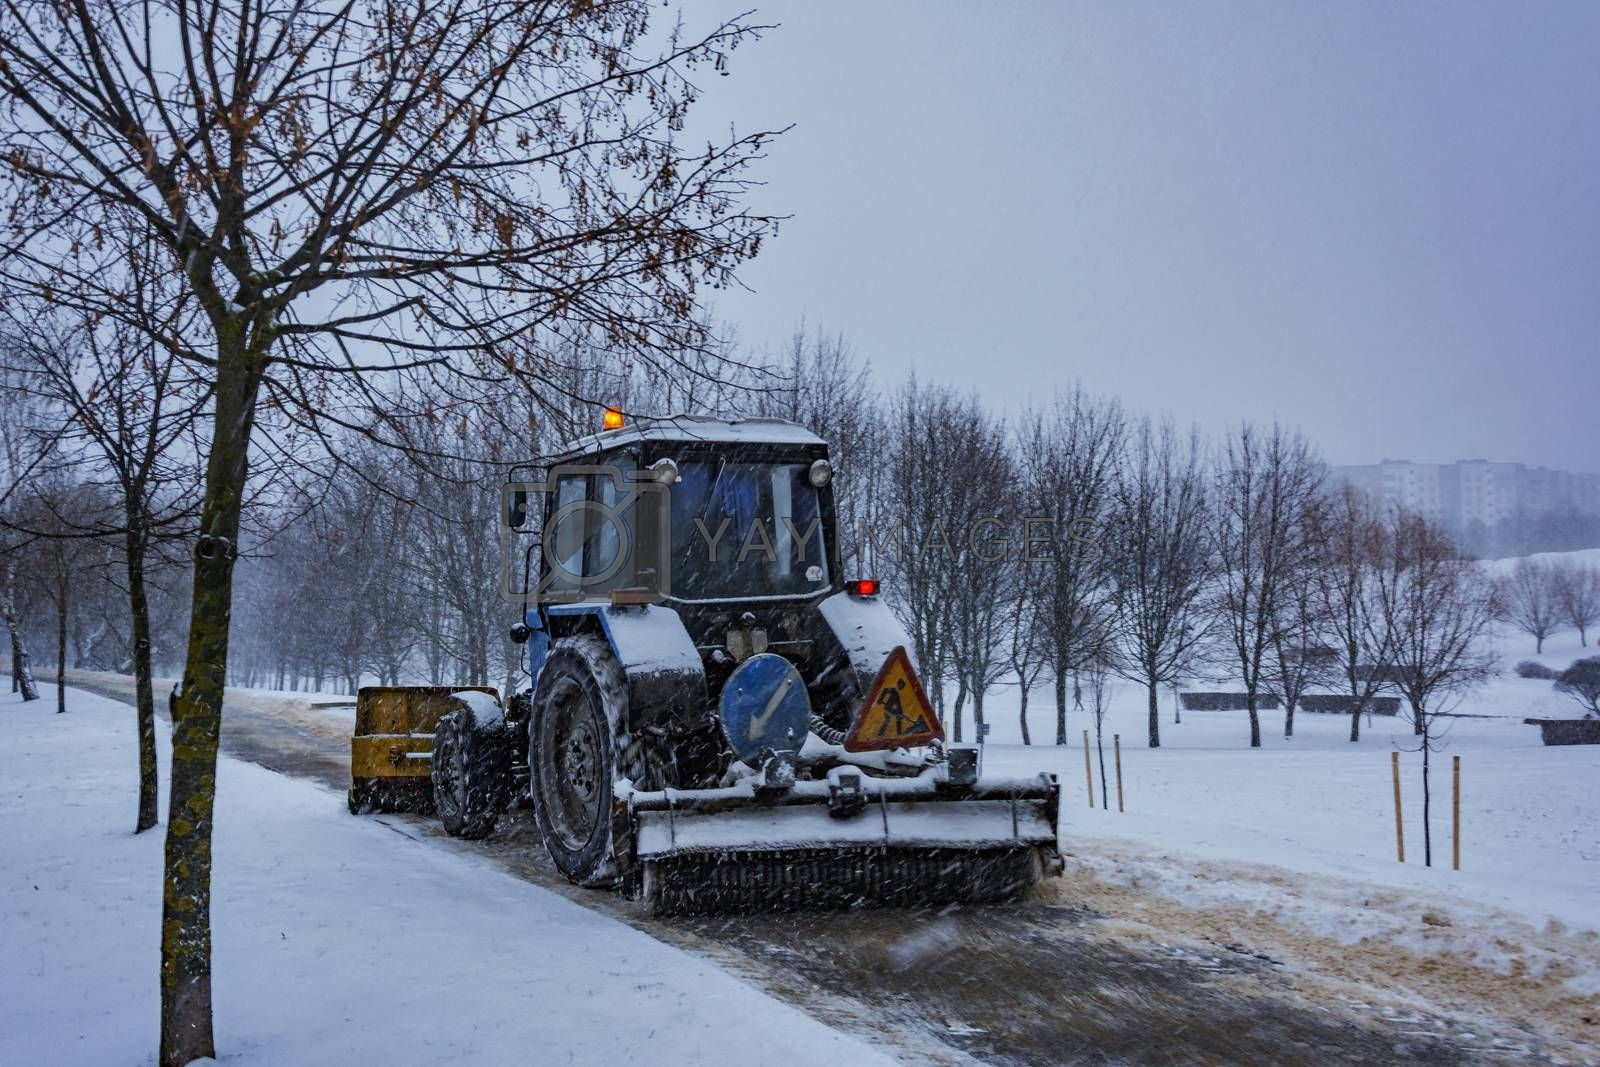 The tractor cleans snow from the sidewalk during snowfall by Grommik